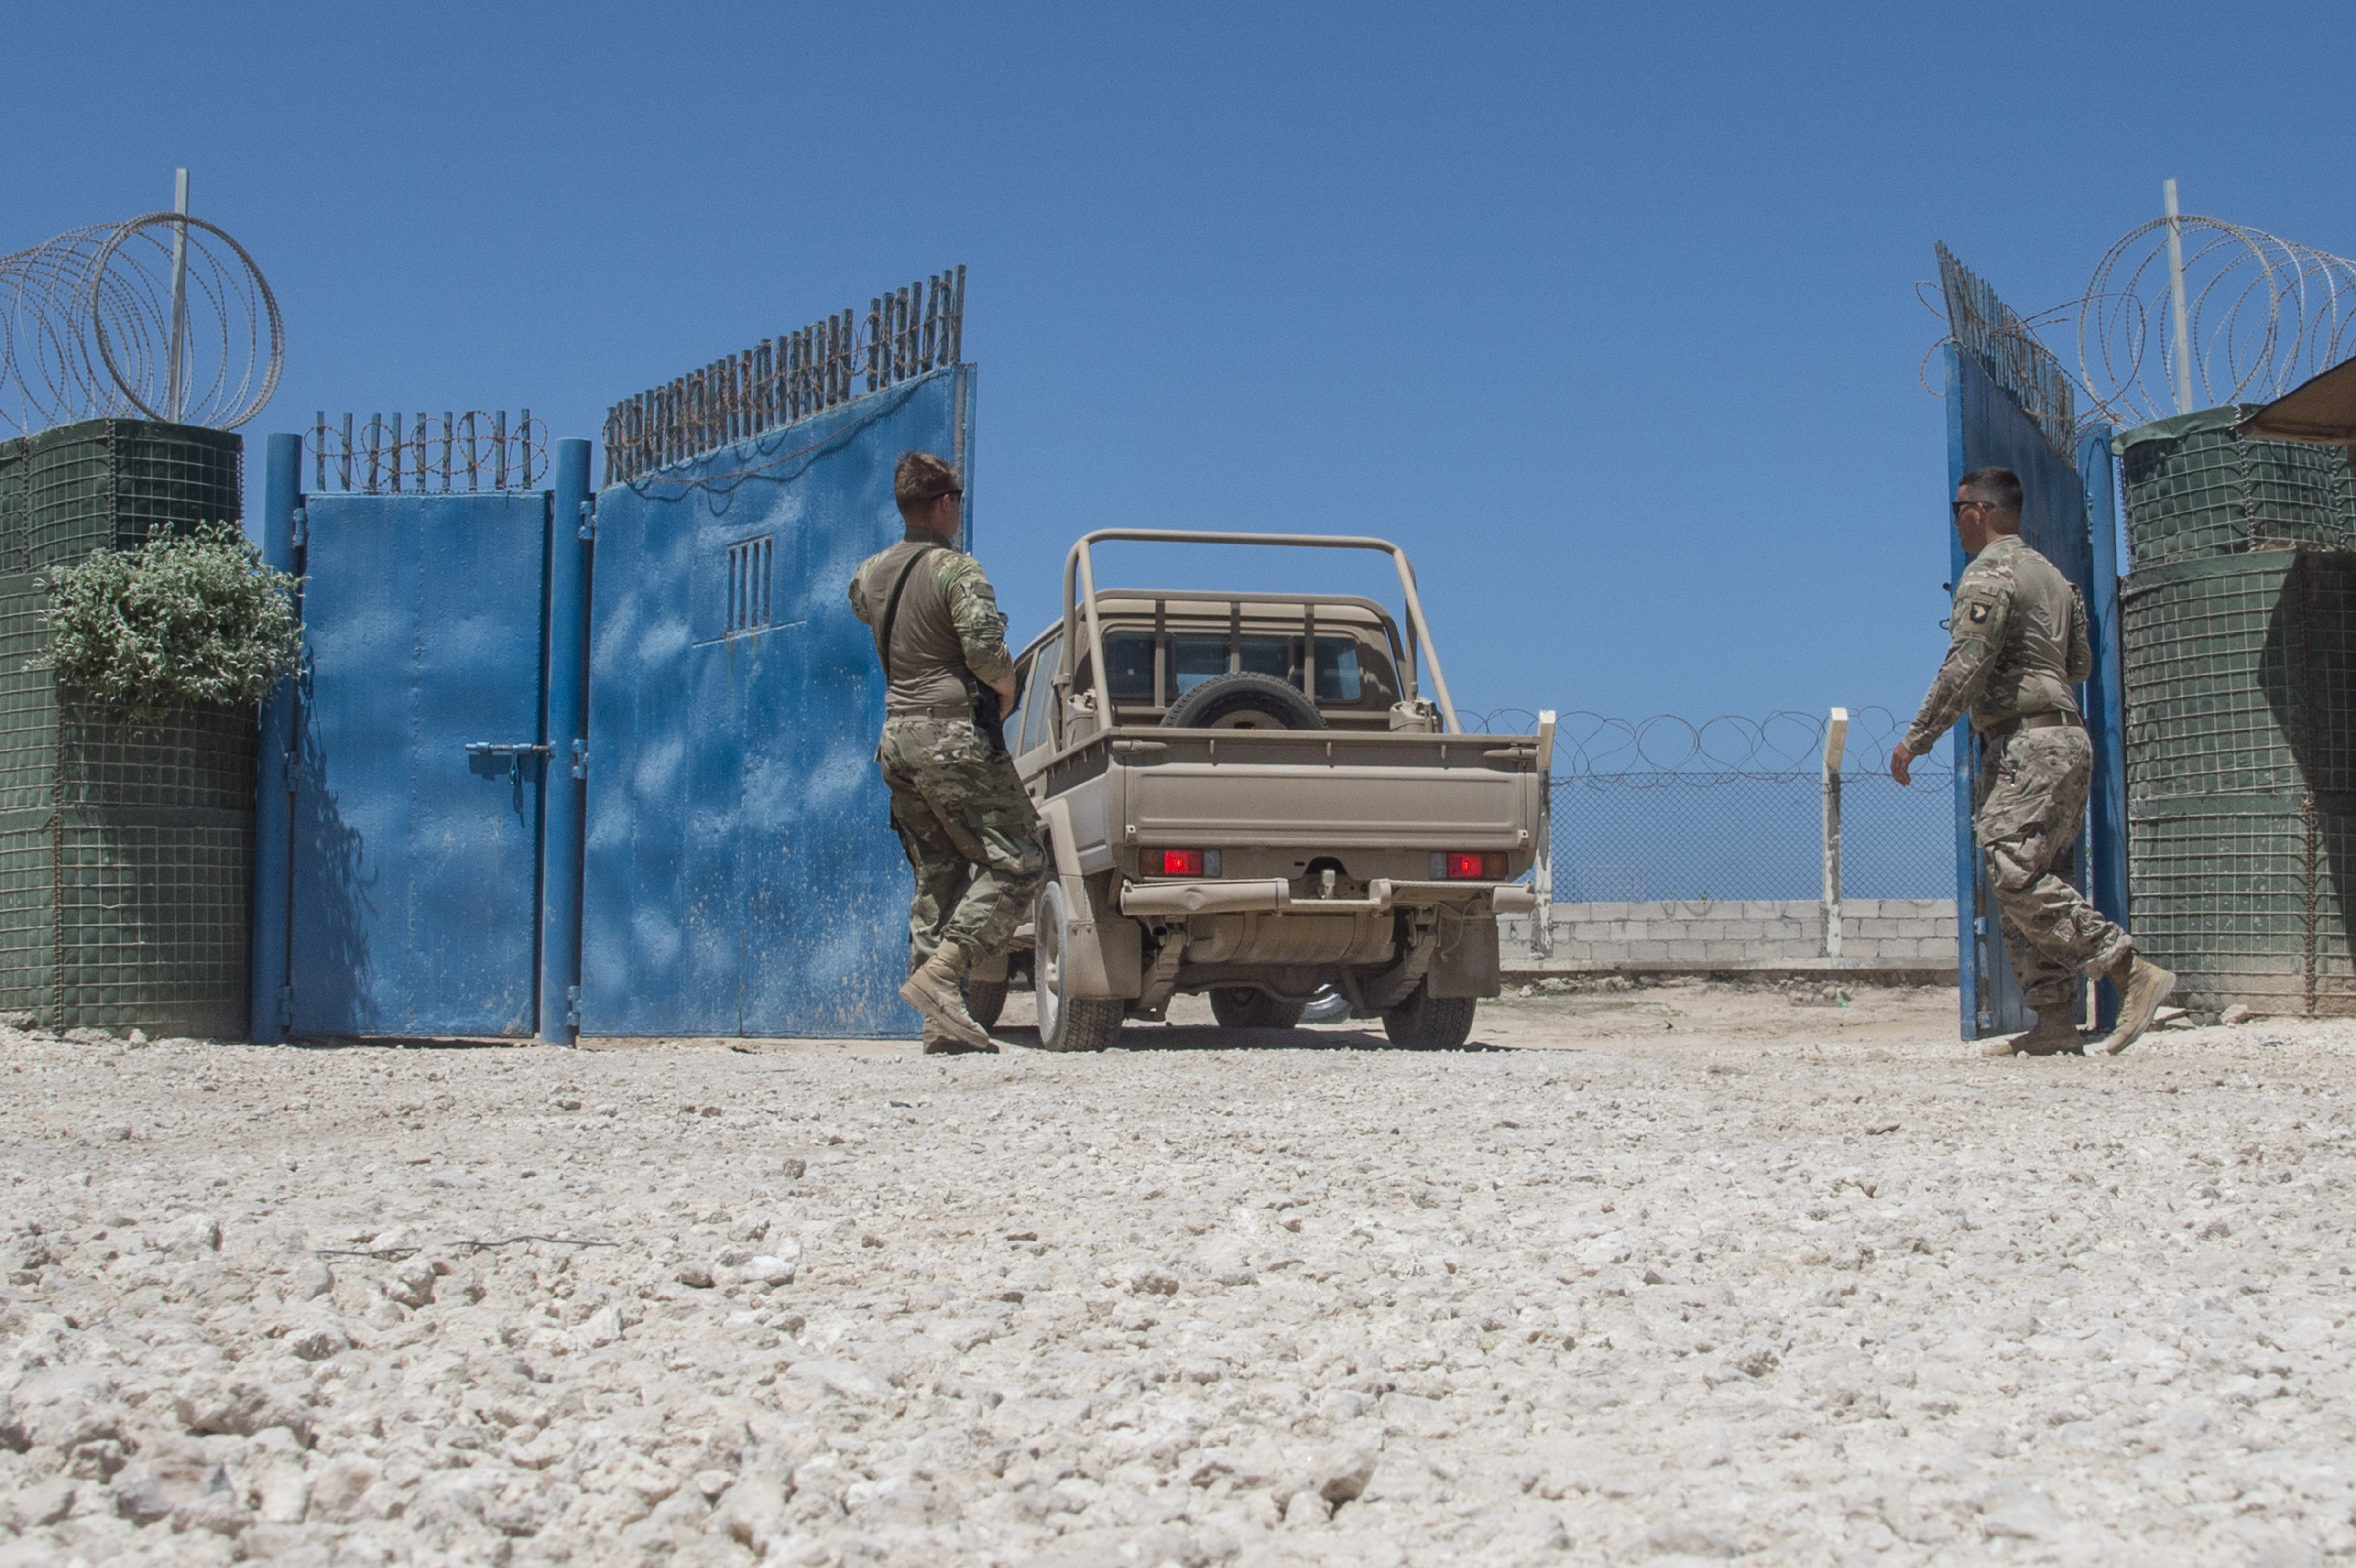 U.S. Army Spc. Tyler Curtis and Spc. Blaine Grubb allow a Somali National Army (SNA) vehicle through the gate at a training site in Mogadishu, Somalia, on May 23, 2017, during a logistics course with the 101st Airborne Division from Fort Campbell, KY. These U.S. Soldiers, who belong to the 101st AD's 1st Brigade, 1st Battalion, Delta Company, 3rd Platoon, were tasked to secure the training site during a logistics training course for the SNA. The SNA's Danab battalion was the first to complete the logistics course, which concentrated on the organization of tactical movements of personnel, equipment and supplies. (U.S. Air National Guard photo by Tech. Sgt. Joe Harwood)